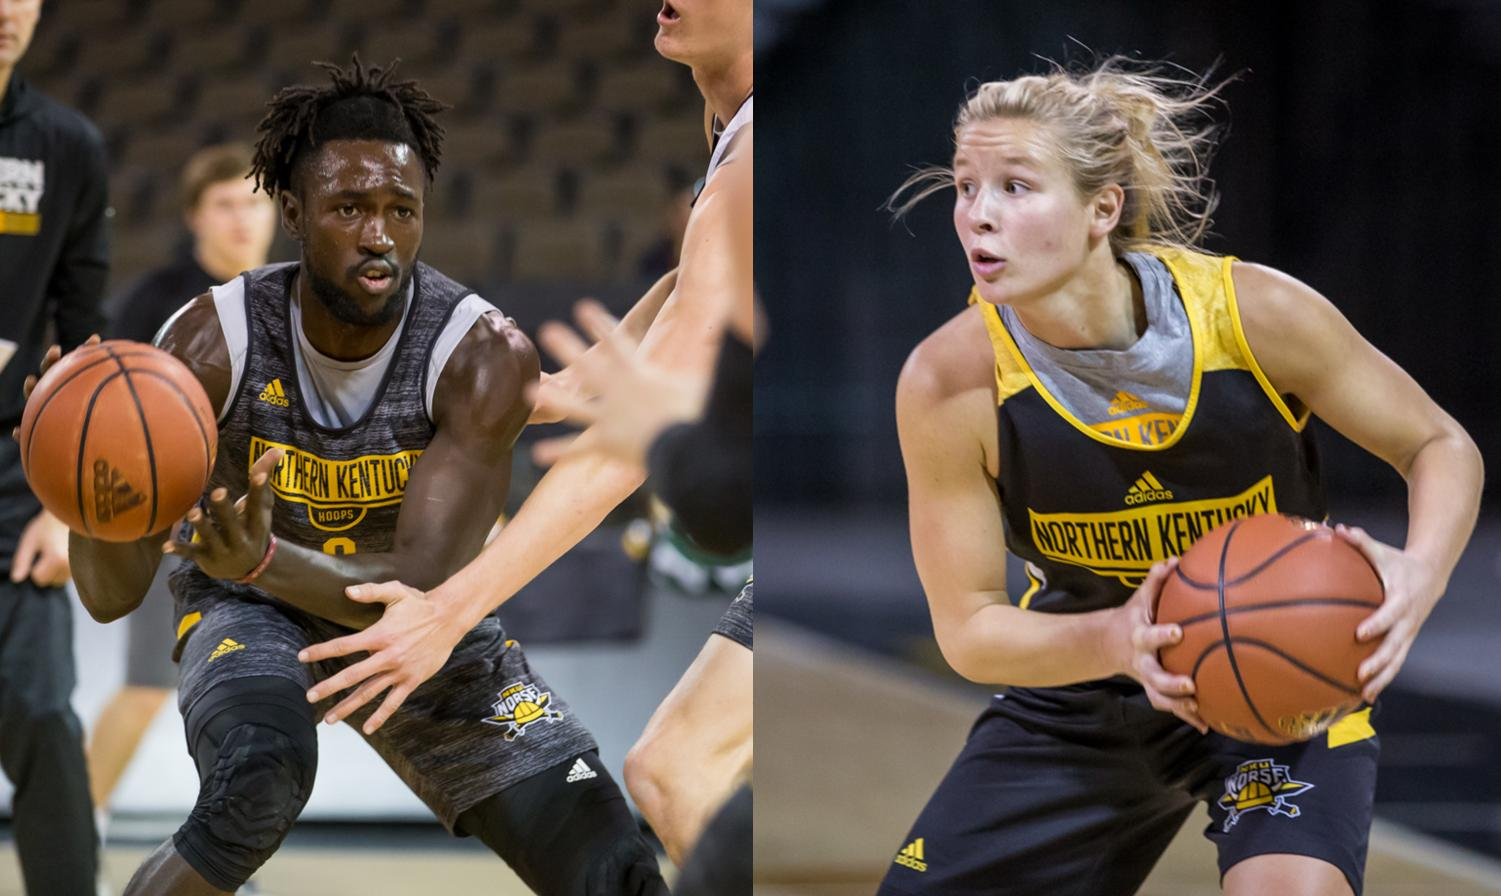 Left: Silas Adheke (0) looks to pass to a teammate during basketball media day. Right: Taryn Taugher (11) searches for a teammate during a drill during basketball media day.